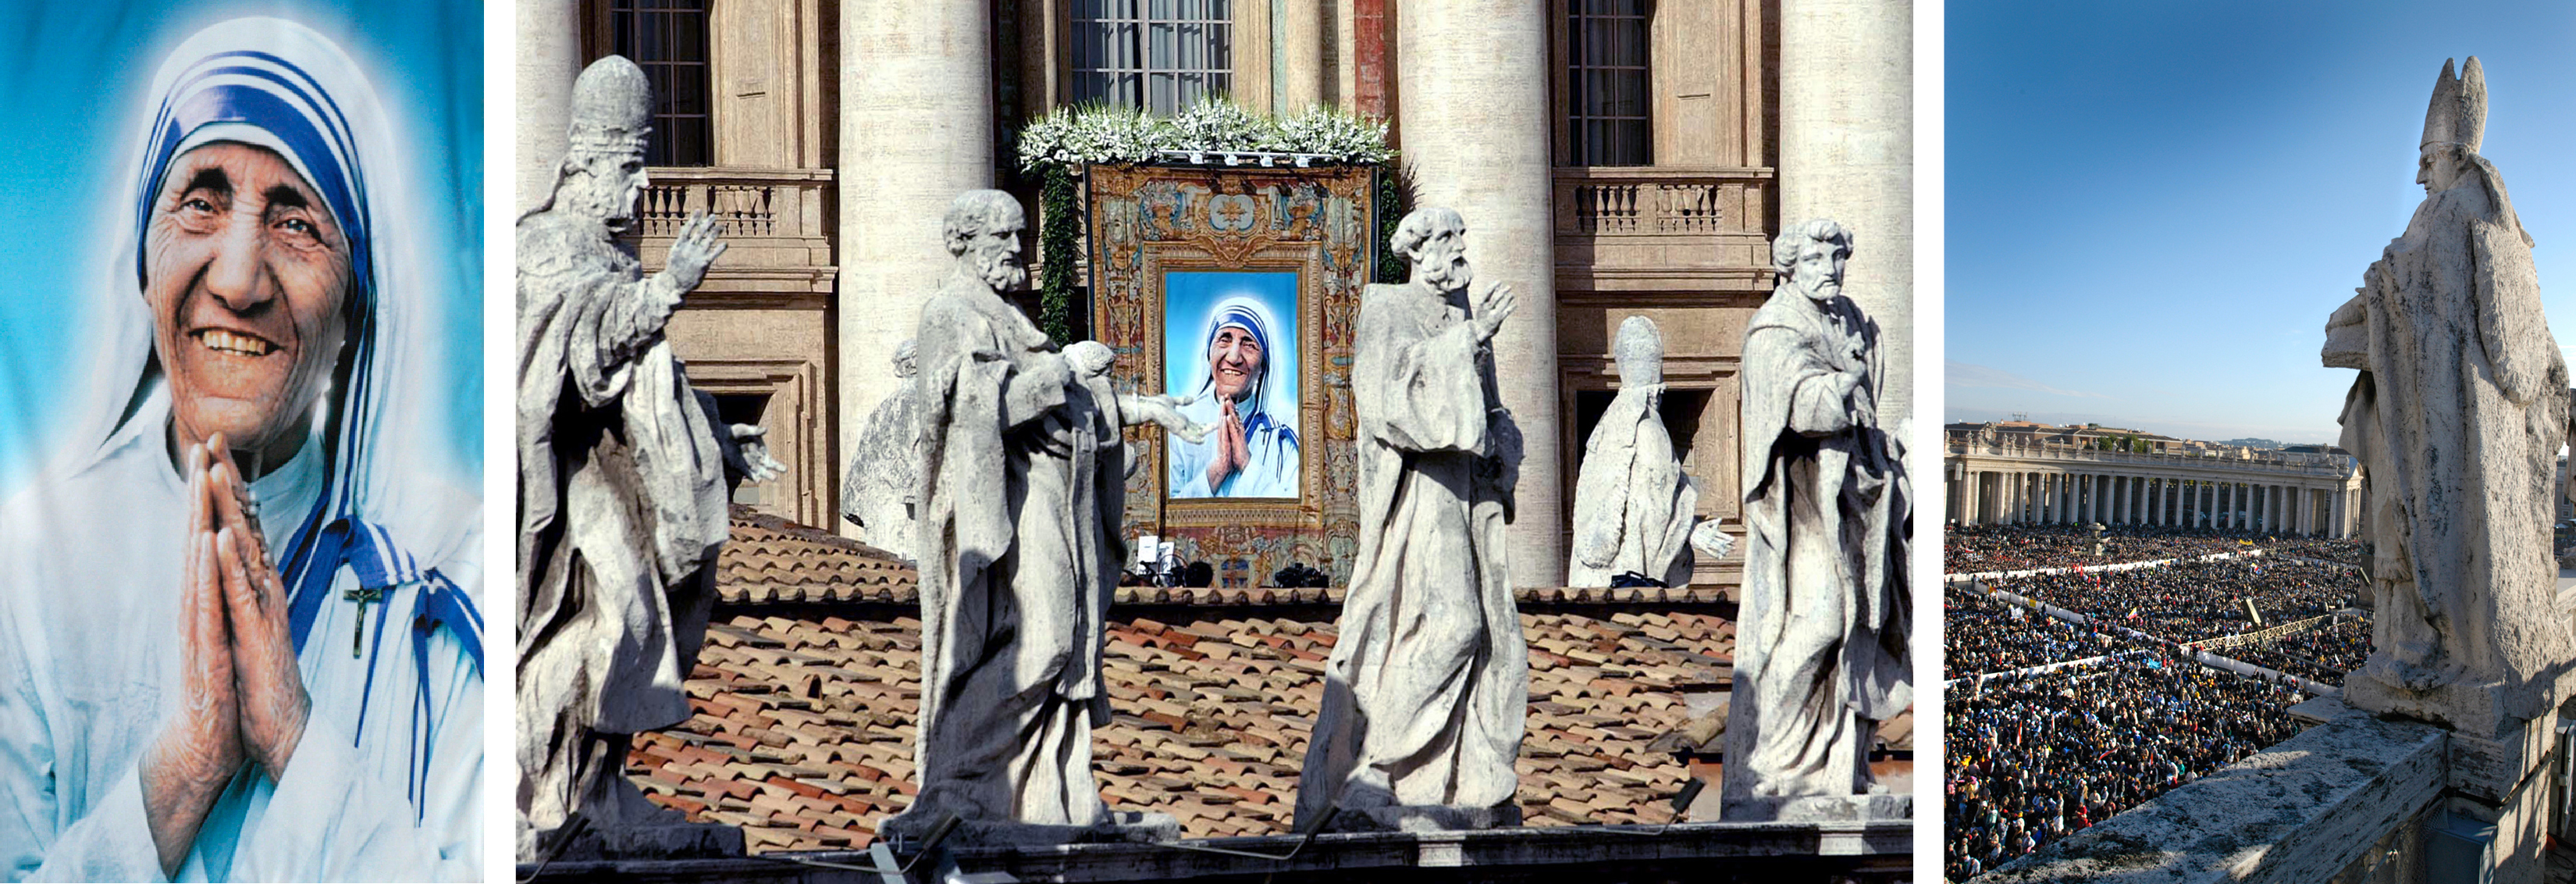 Marie's photo at Mother Teresa's Beatification